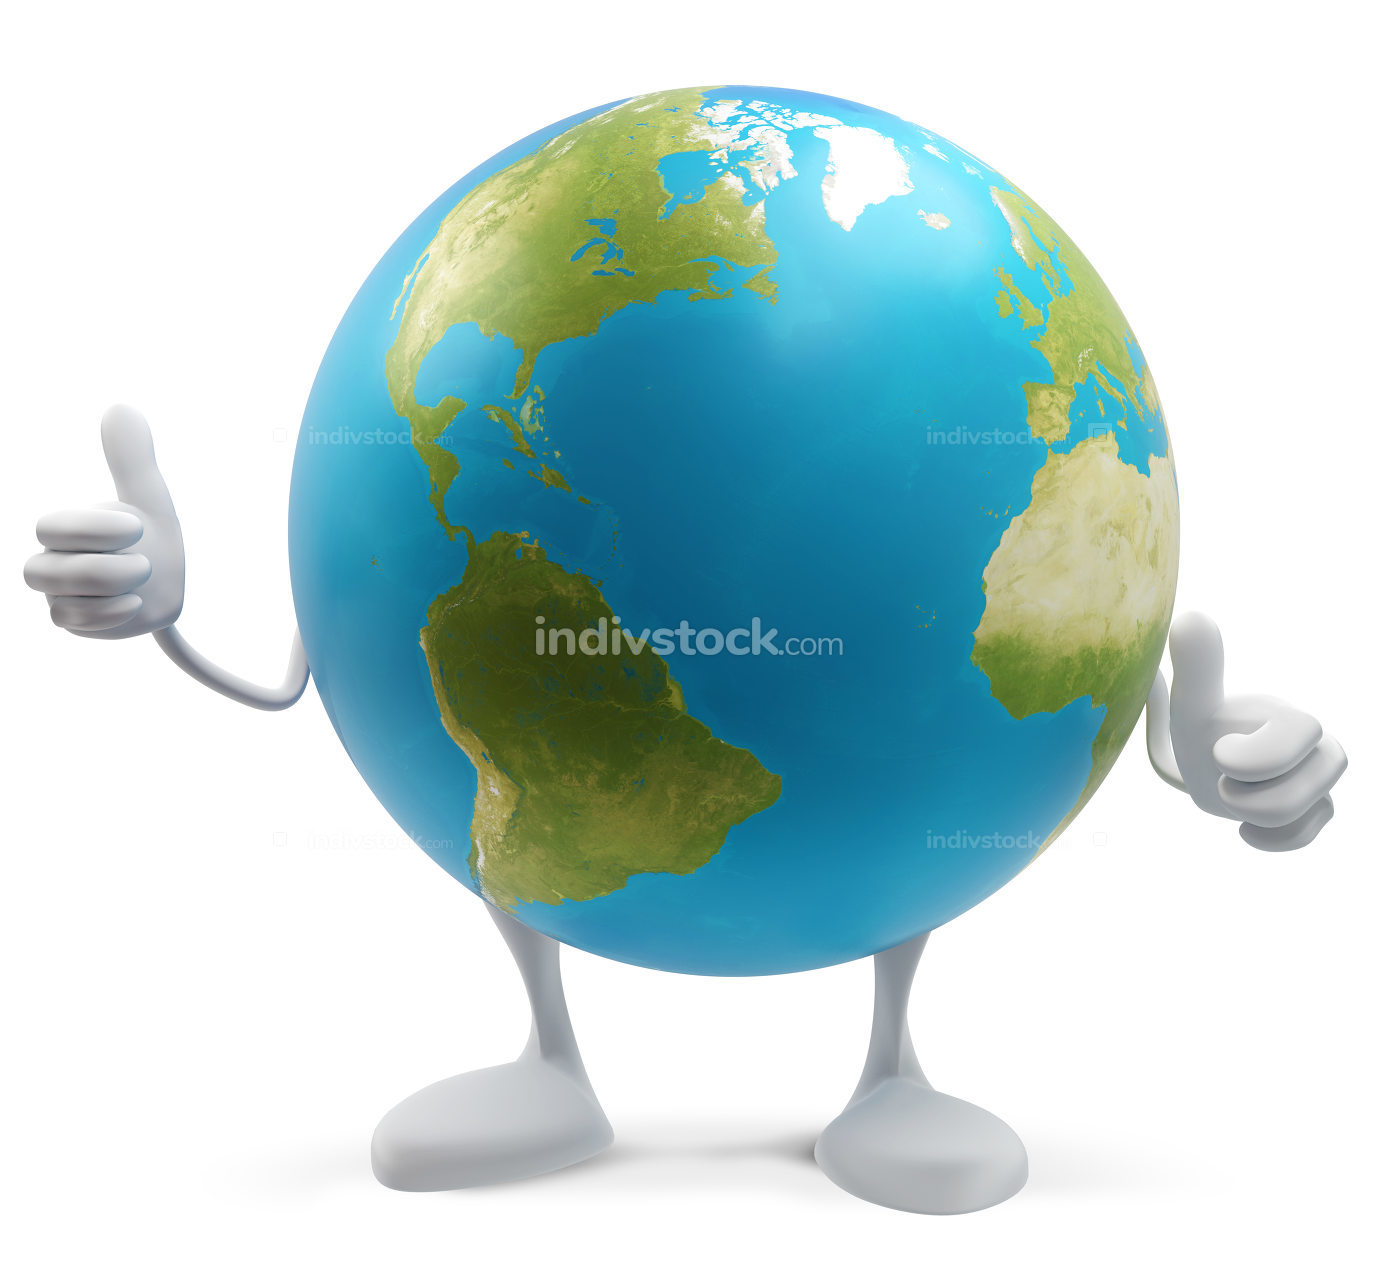 thumbs up planet earth globe isolated 3d-illustration. elements